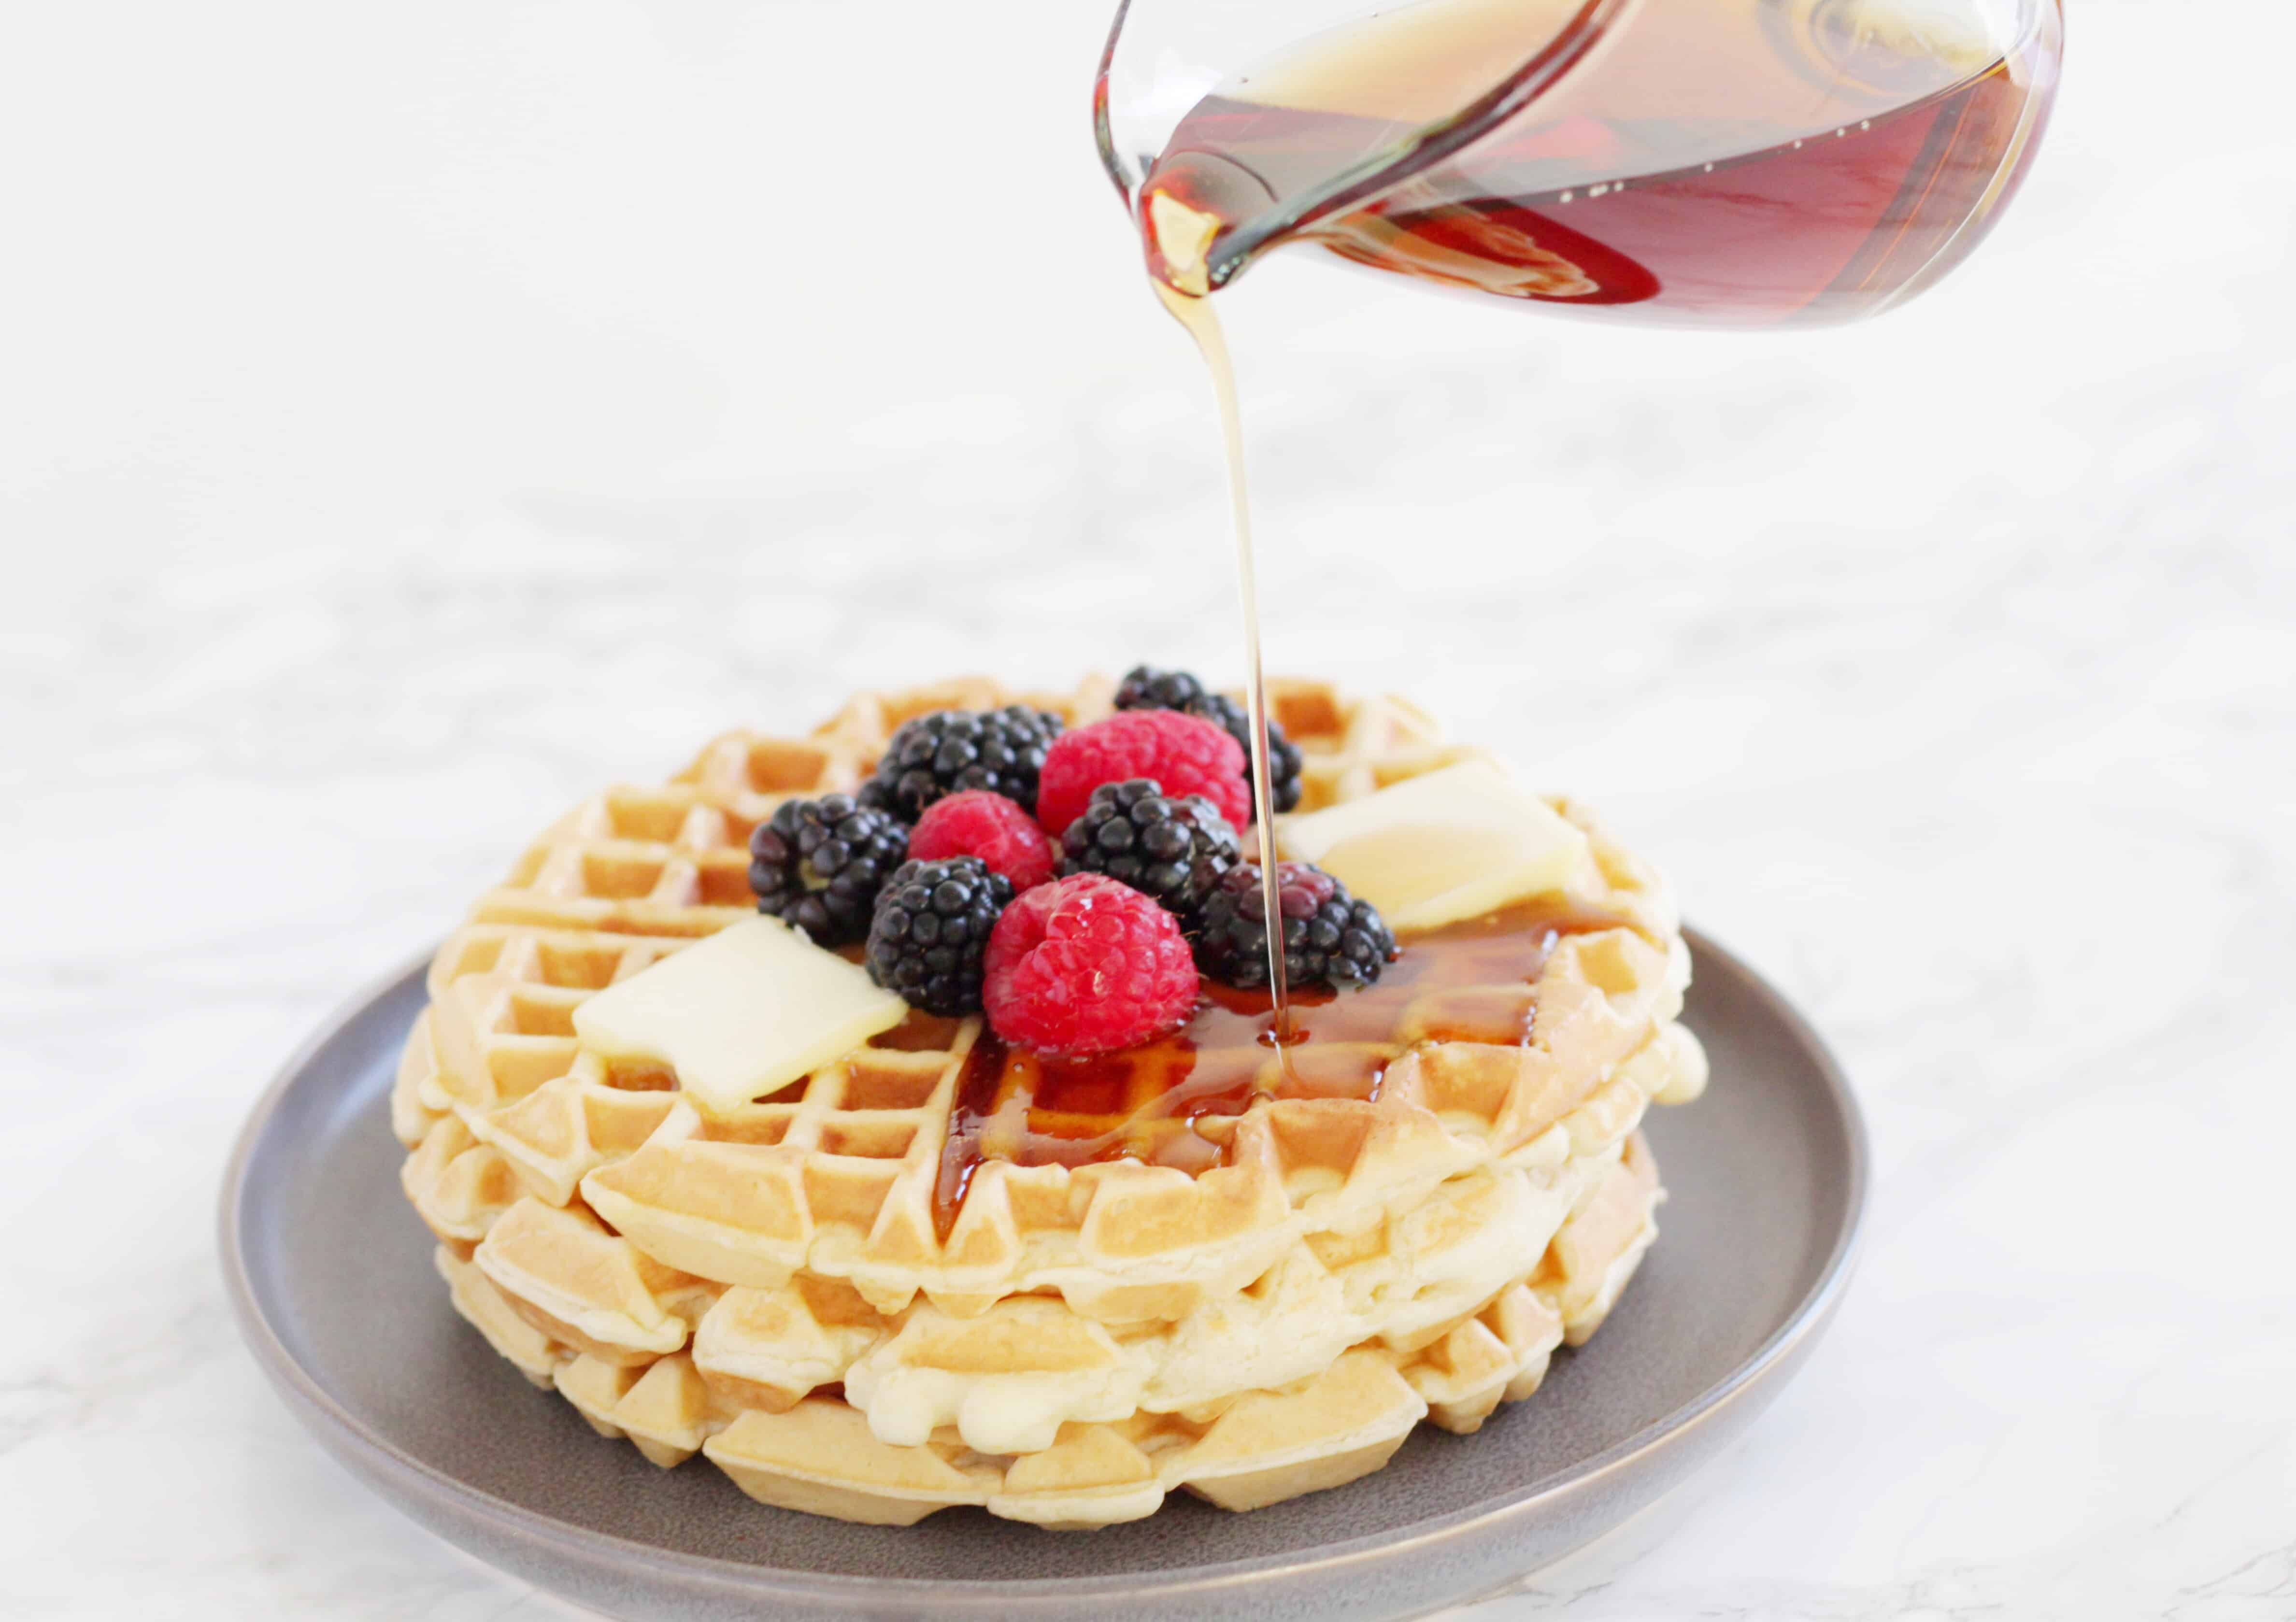 Syrup being poured on fluffy waffles topped with fruit